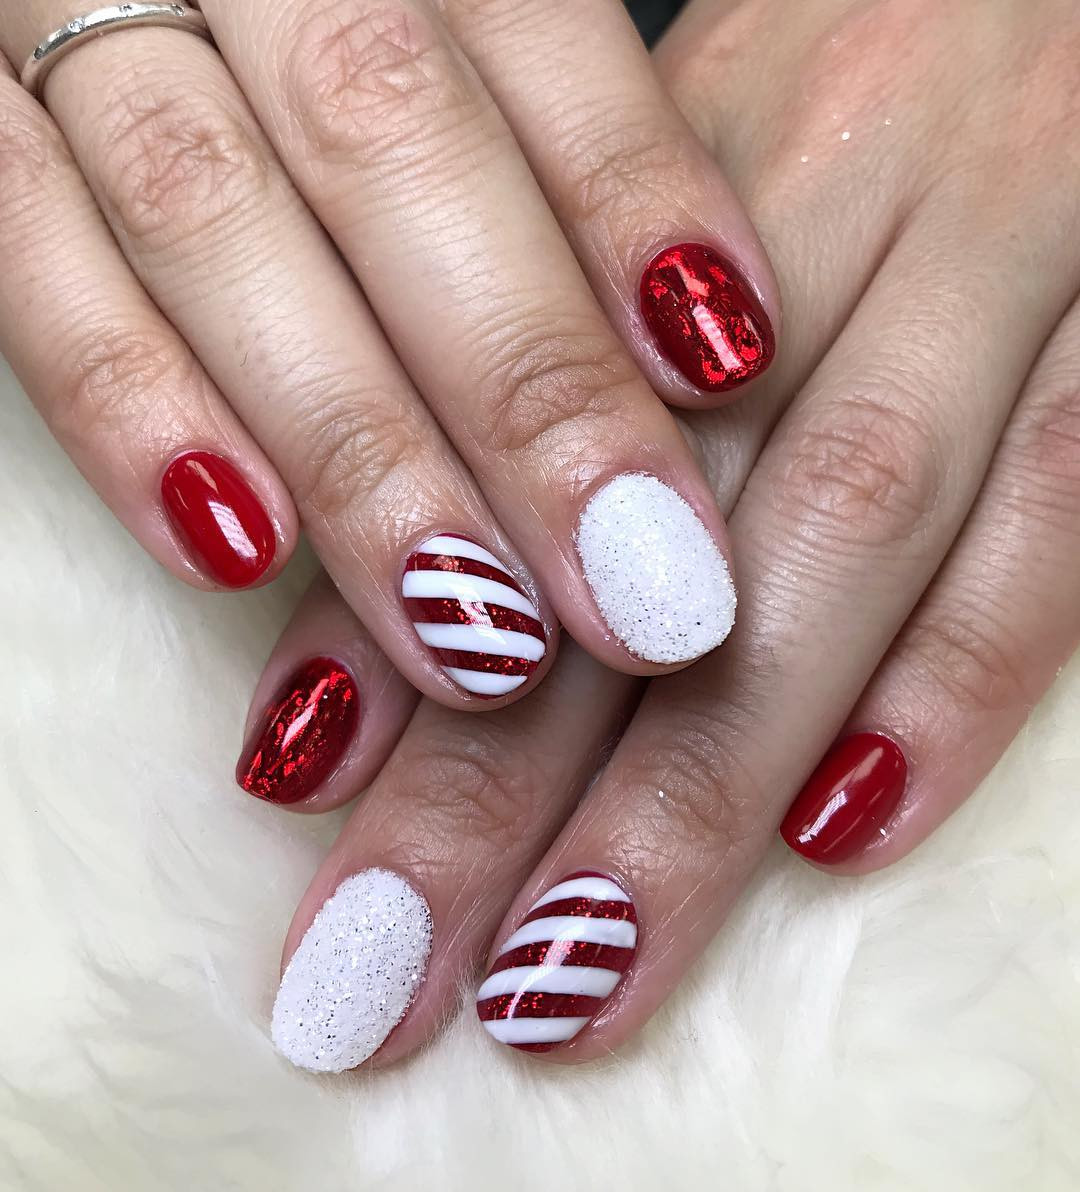 58 Pretty Winter Nails Designs to Spice up Your Routine